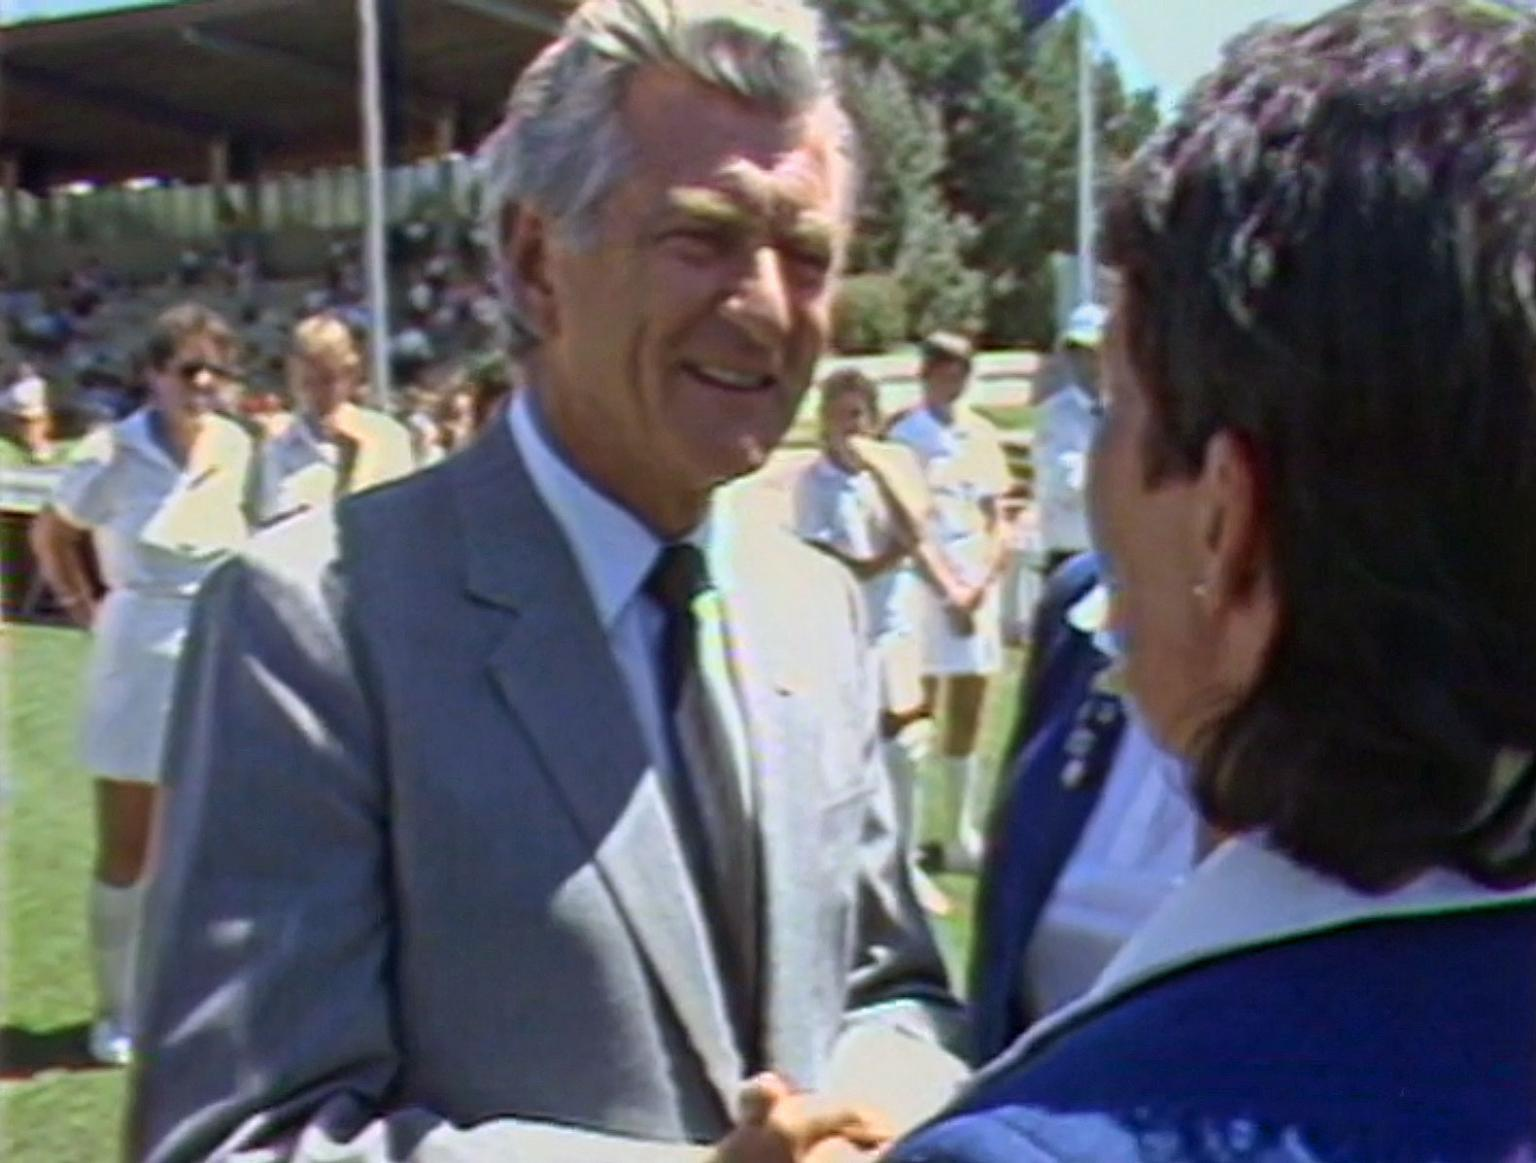 Prime Minister Bob Hawke greets a member of the England Women's cricket team in 1985 in Canberra.